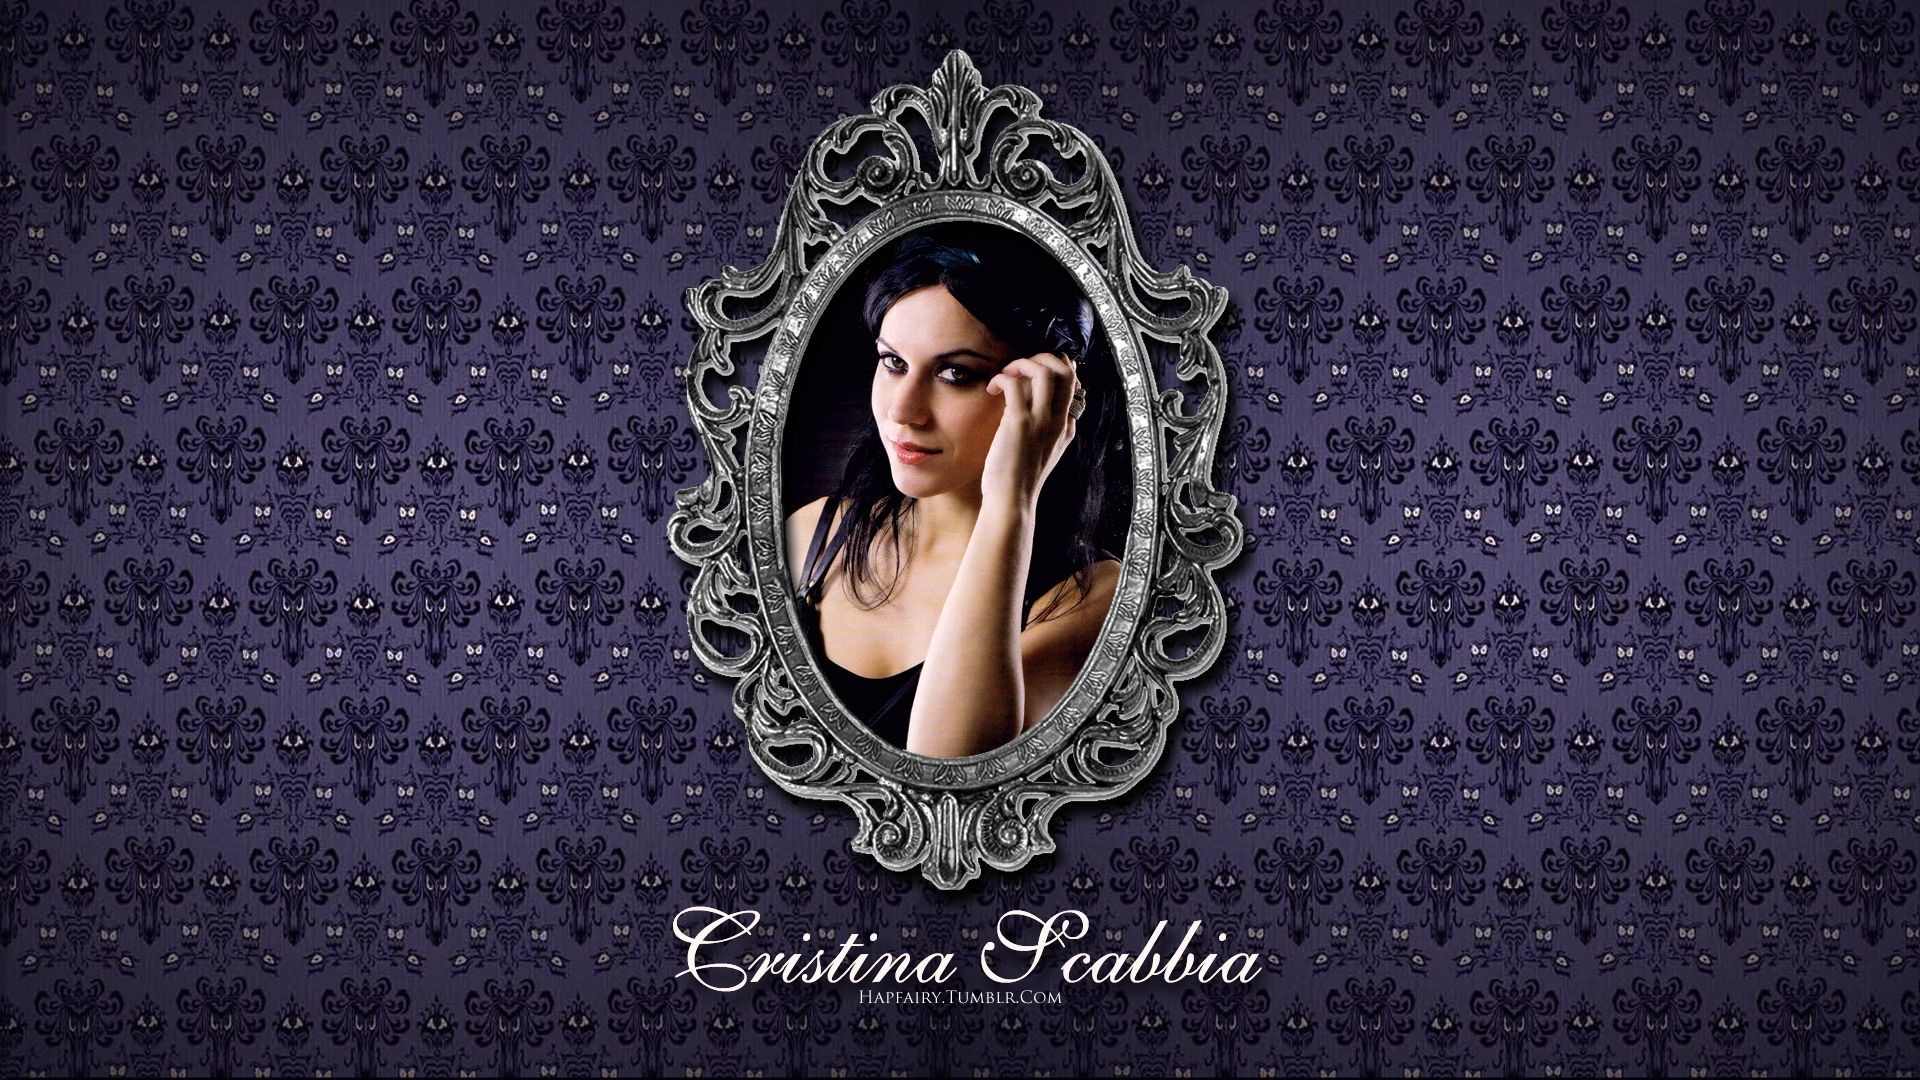 Res: 1920x1080, Cristina Scabbia and Lacuna Coil Wallpapers